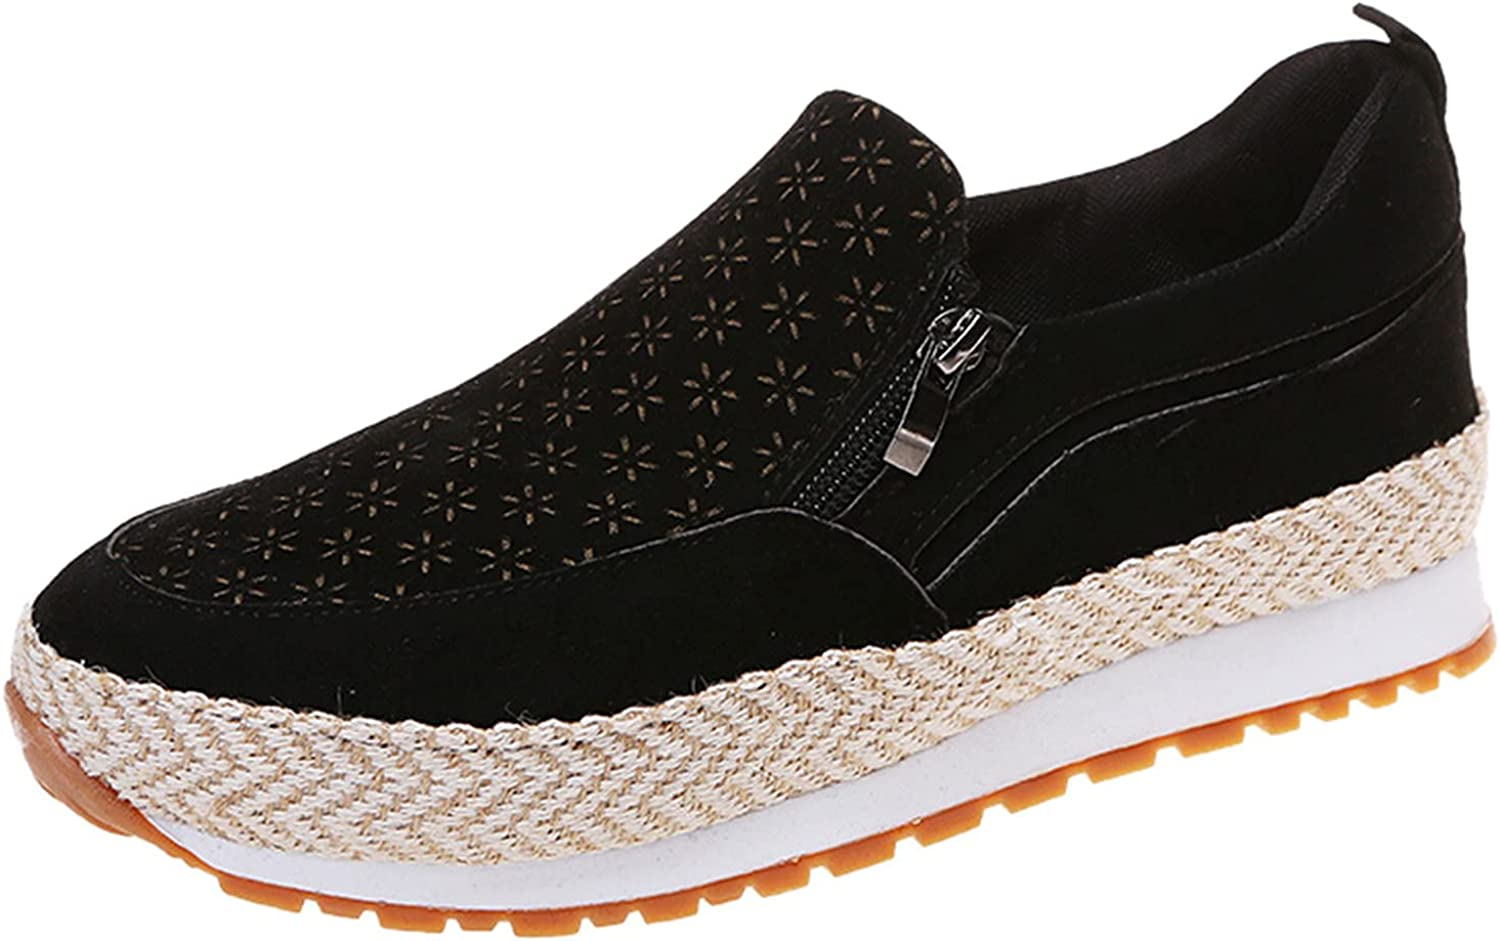 Women's Slip On Sneakers Fashion Athletic Running Walking Shoes Flats Non Slip Loafers with Zipper